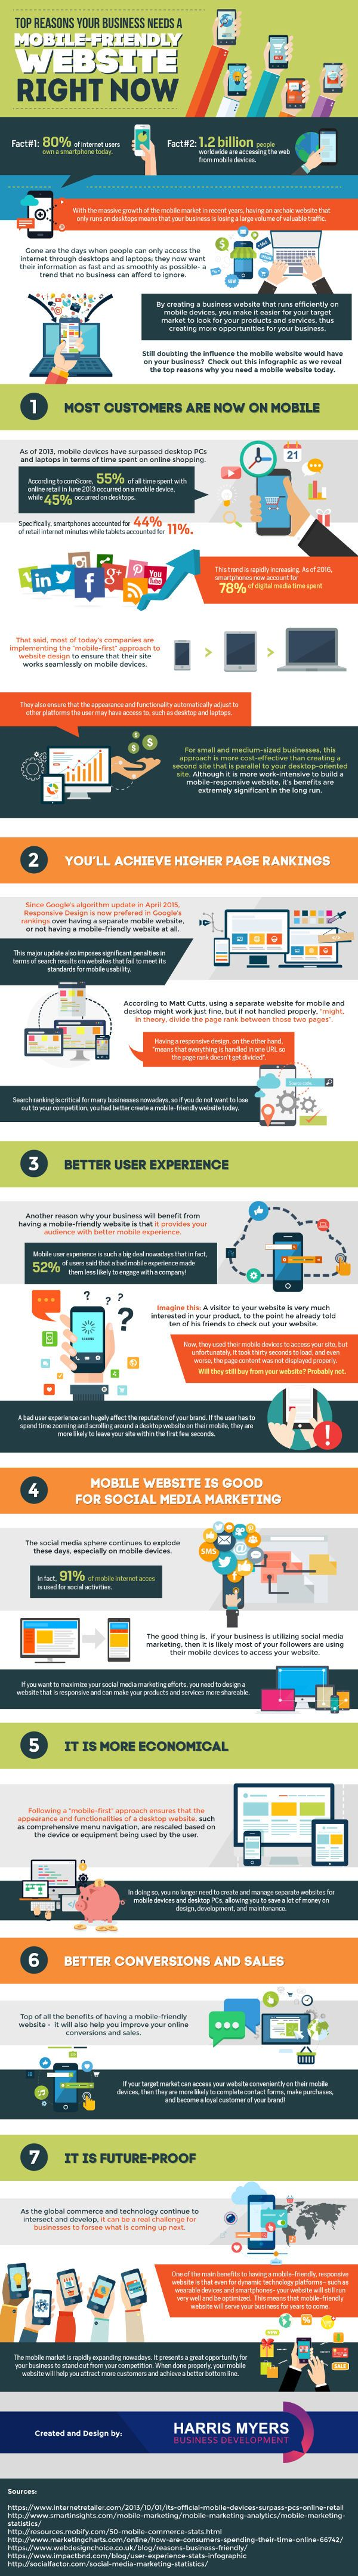 A mobile-friendly website is not a nice-to-have: A business must make browsing or buying as easy on mobile as it is on desktops for customers. See the infographic for why there's no time to waste.